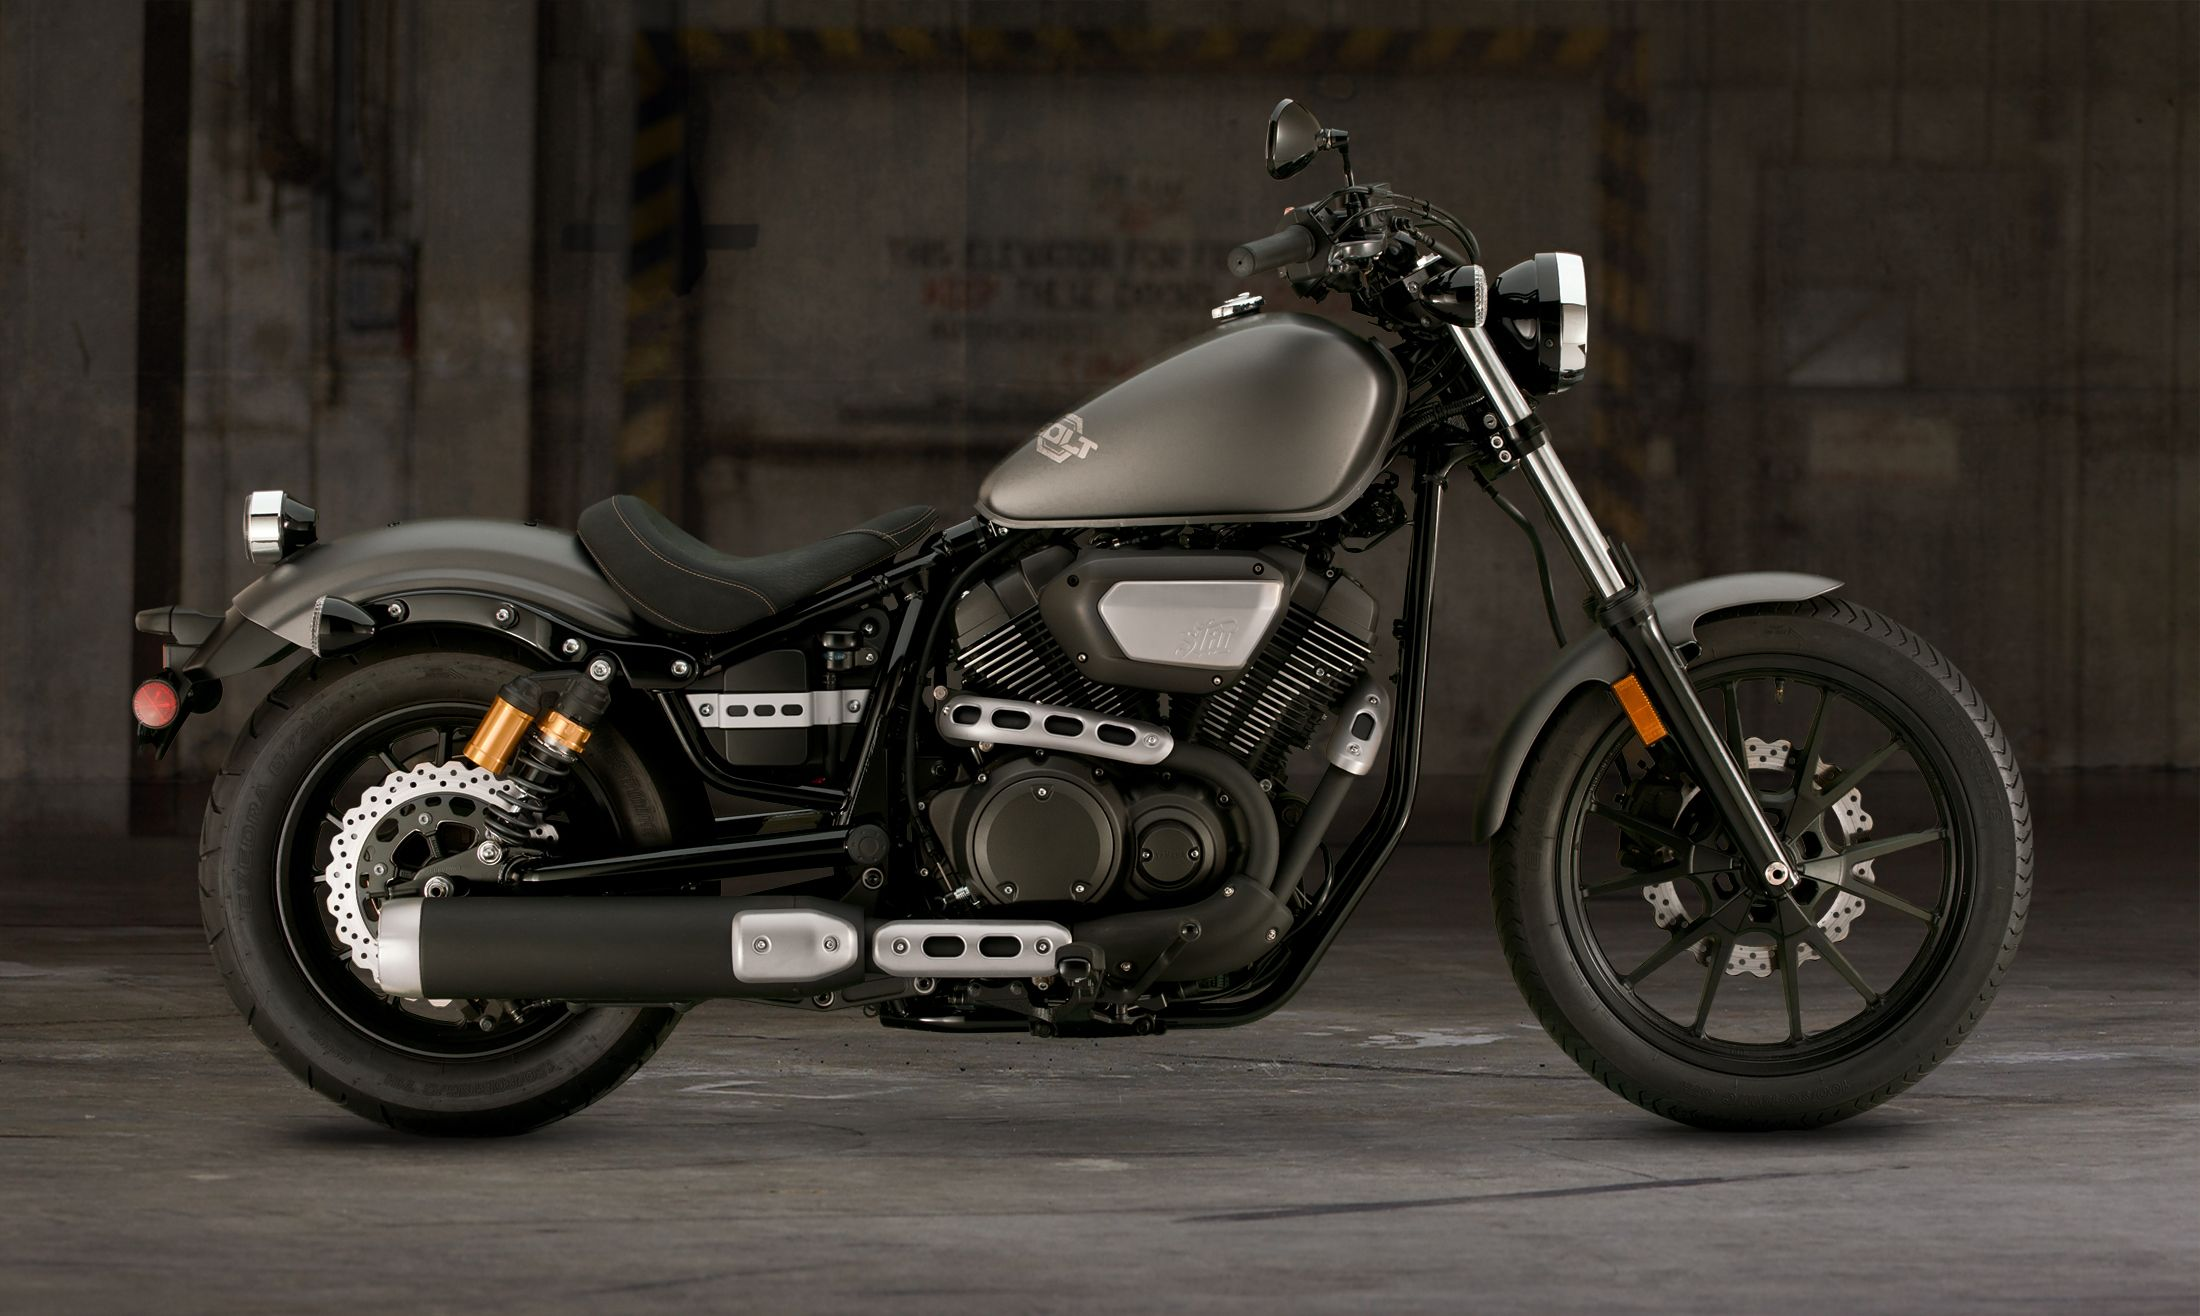 2014 yamaha bolt r wallpaper high quality background and hd